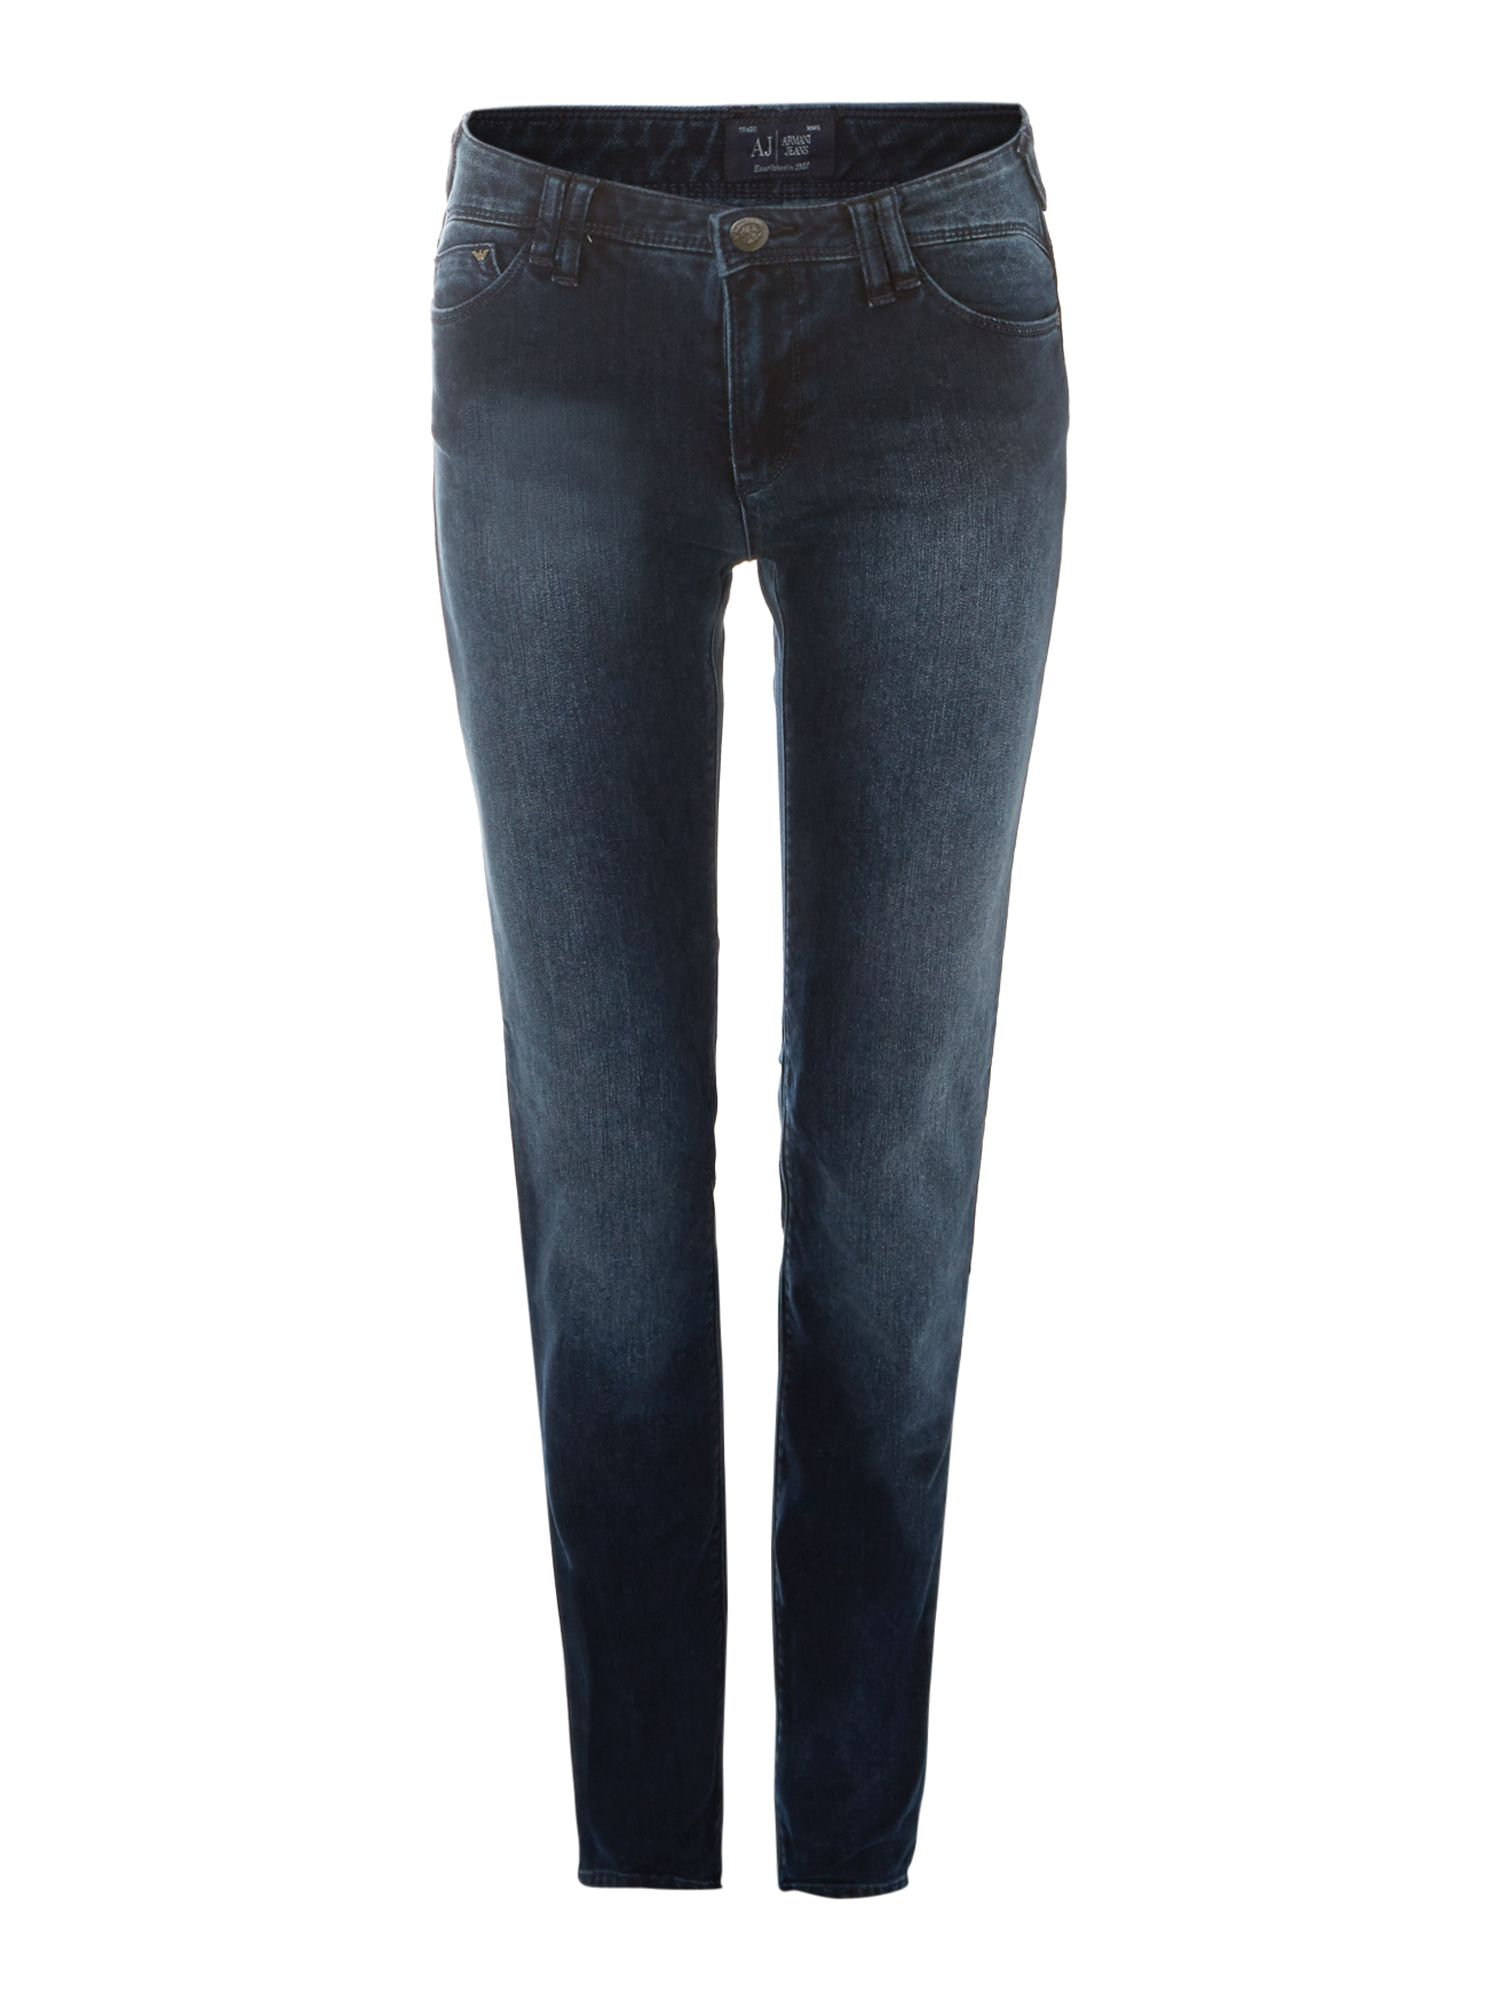 J28 skinny jeans with stretch pocket detail